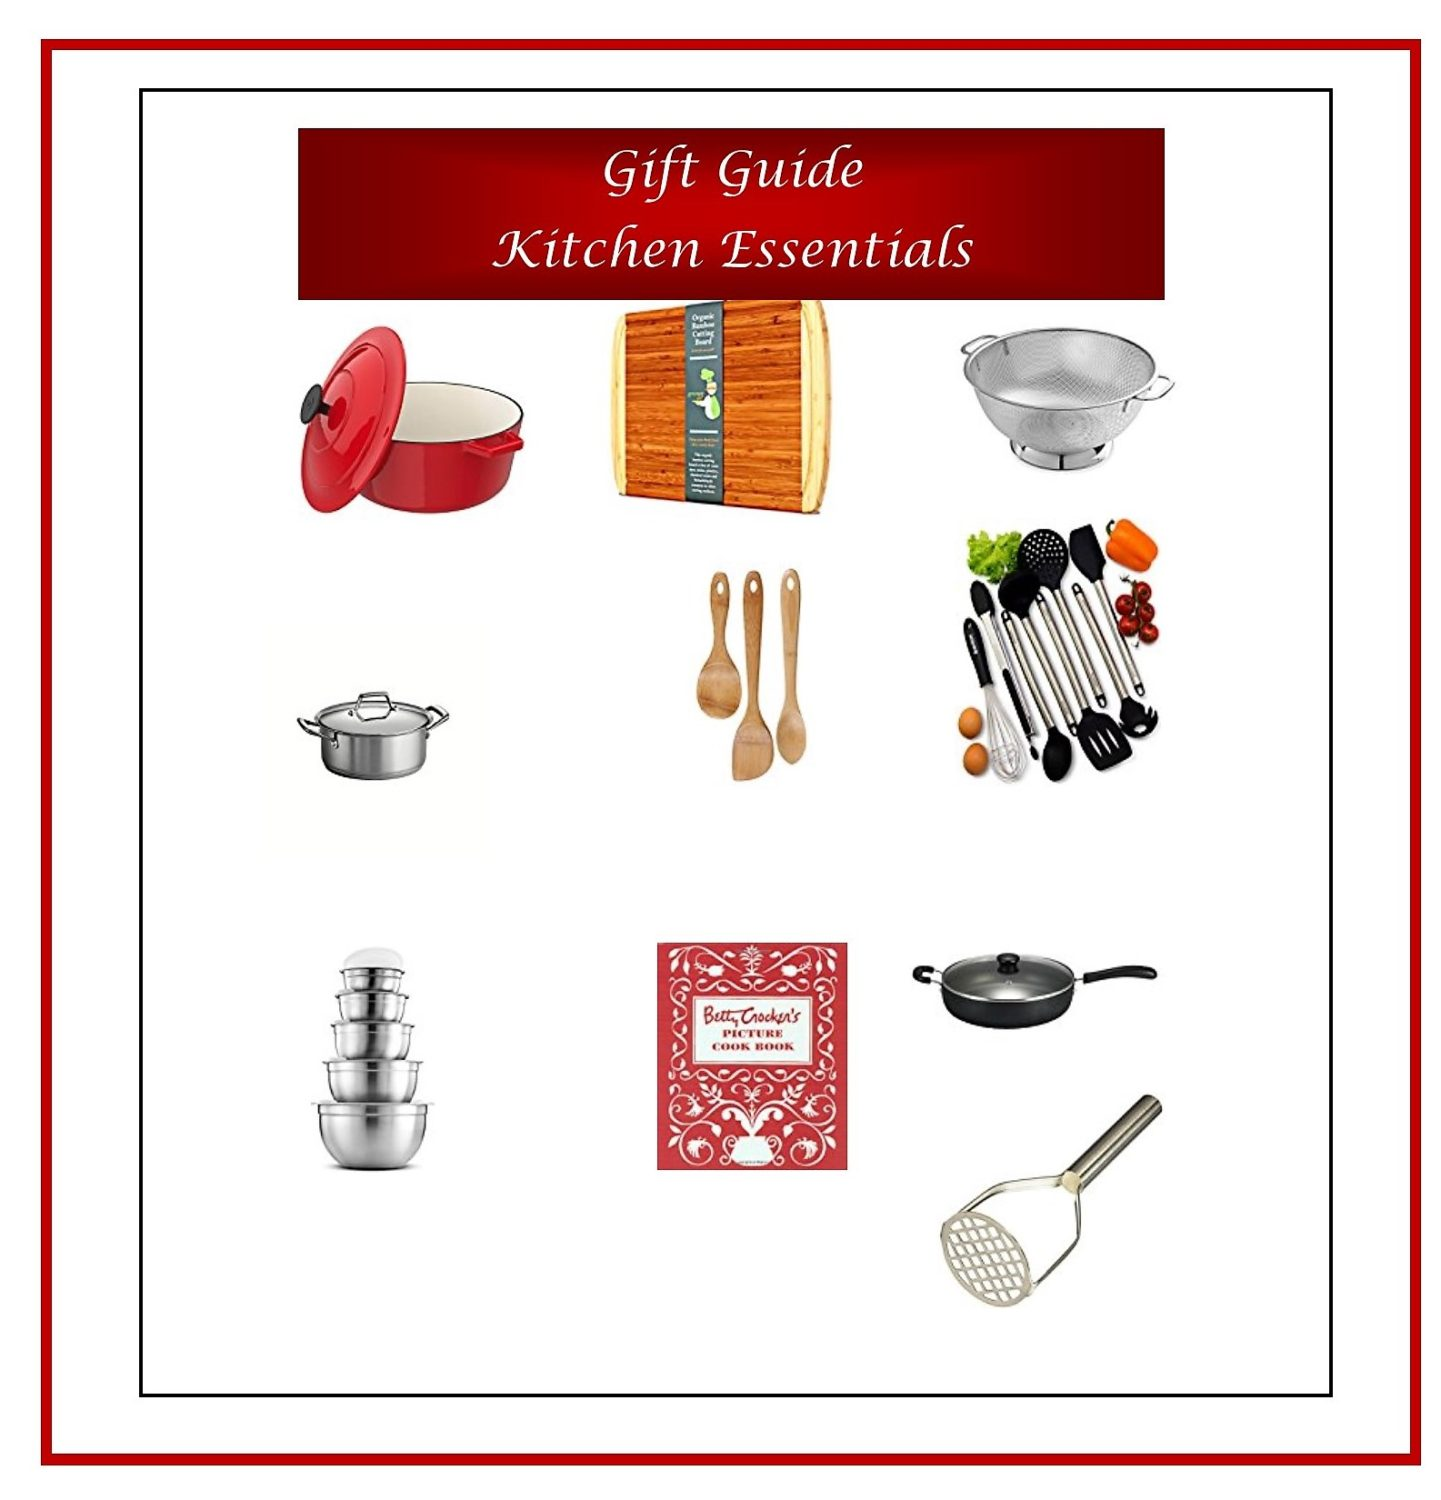 Gift Guide Kitchen Essentials 1